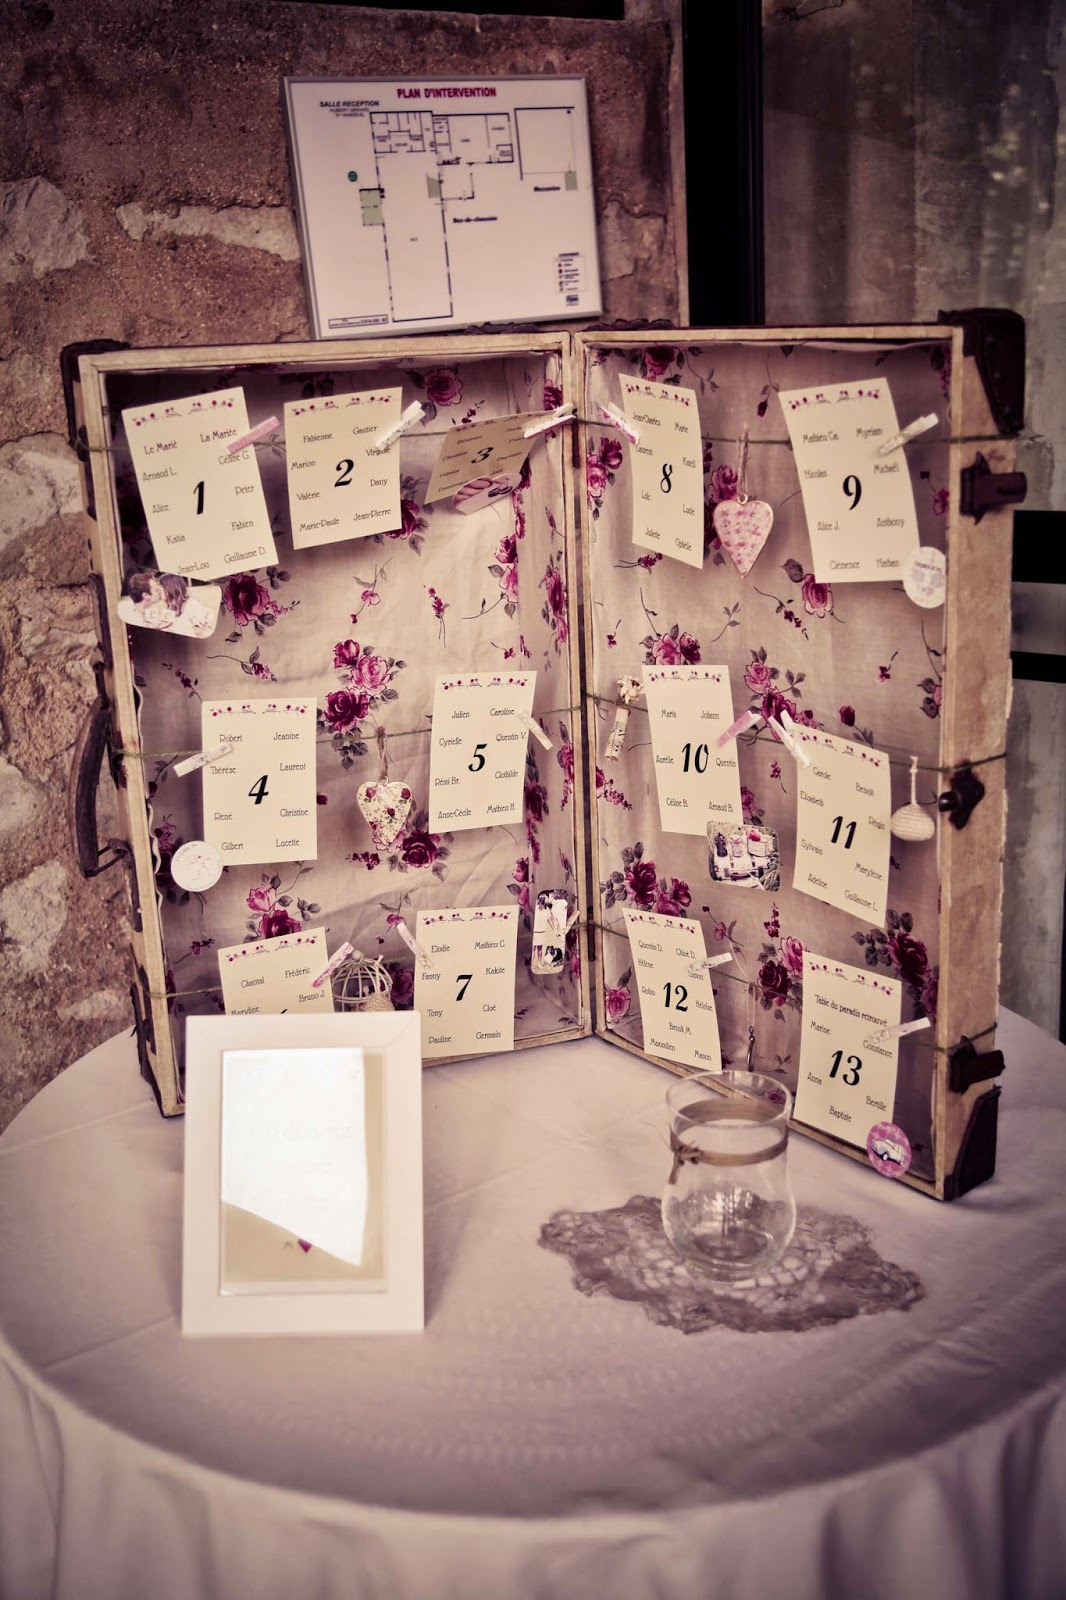 Wedding table plan cards in vintage suitcase - wedding sweet table - wedding photography by Elisabeth Perotin